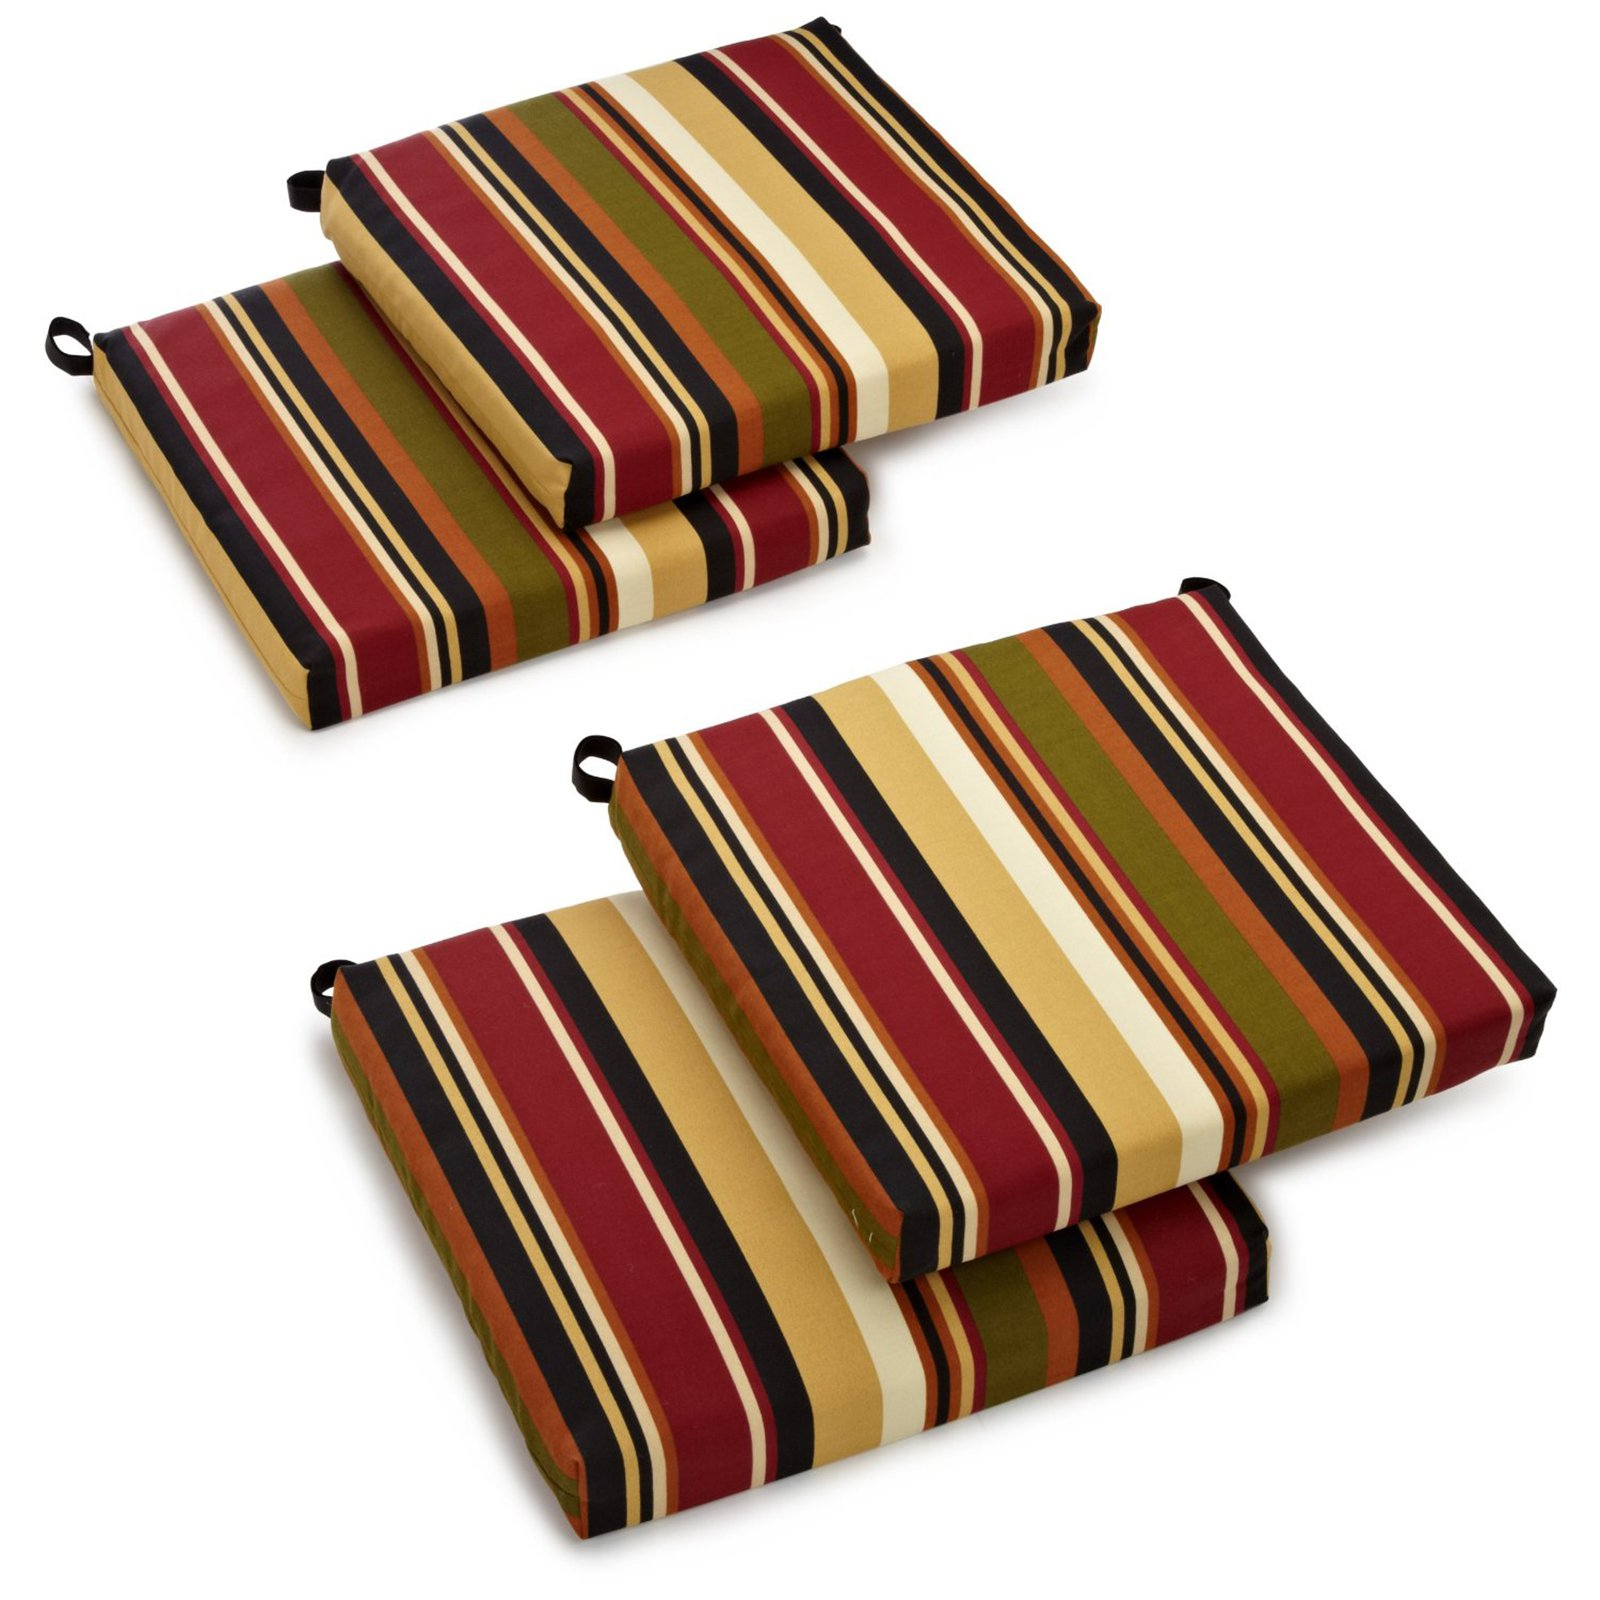 patio chair cushions blazing needles outdoor all weather uv resistant 4-piece patio chair cushion  set YQJNFBR